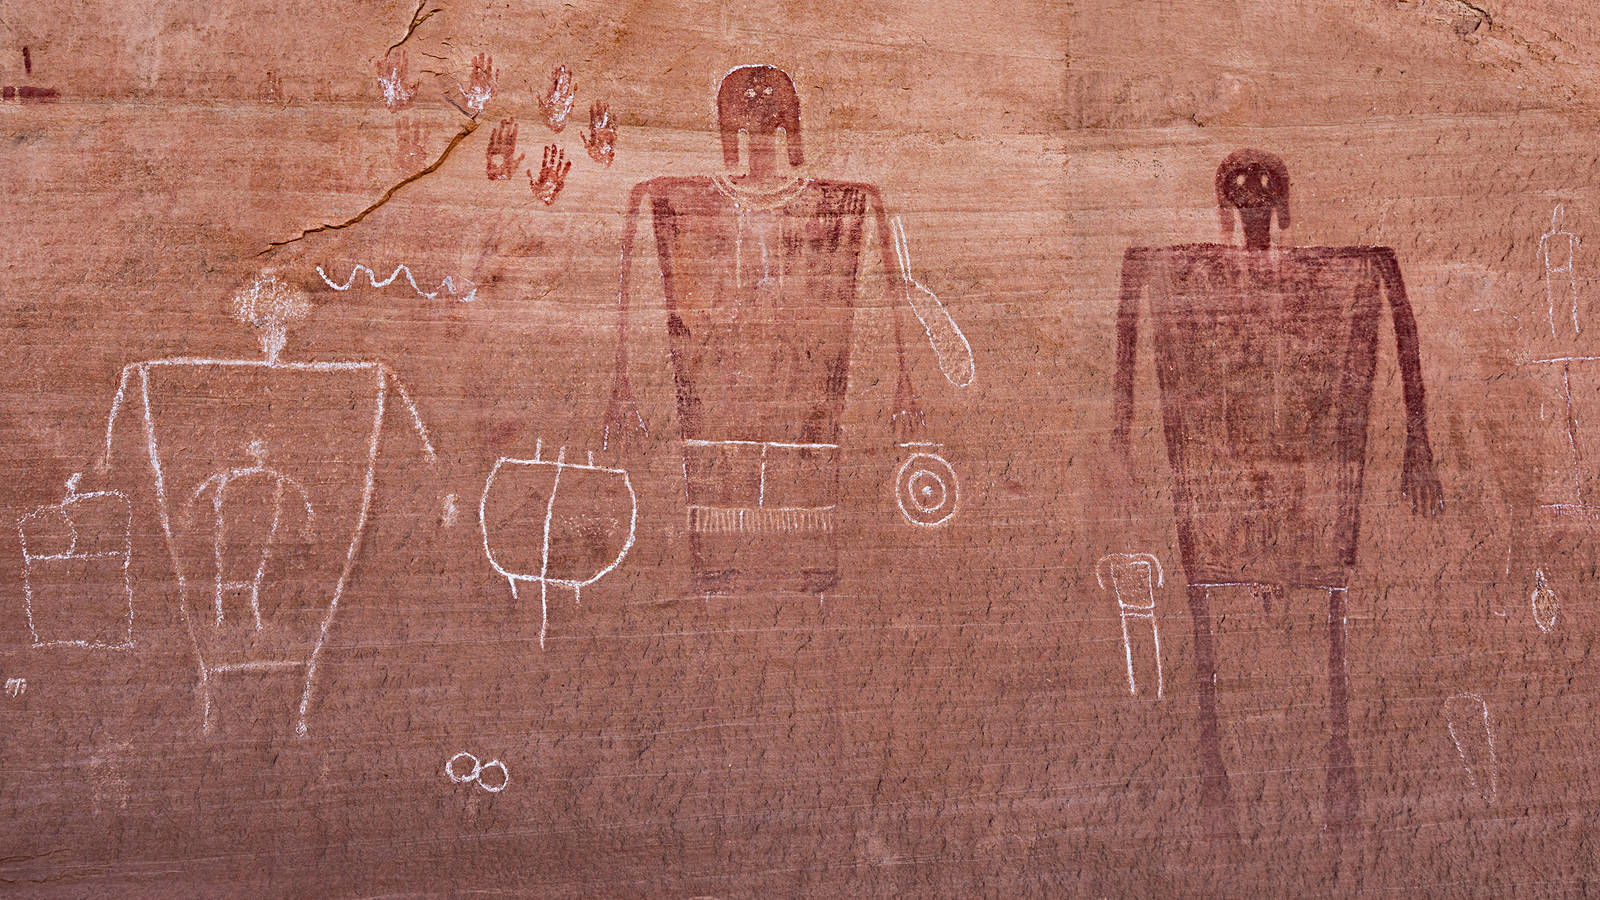 """<h3 style=""""text-align: center; padding: 50px;""""><span class=""""text-Intro-style"""">The Big Man Panel, located in Bears Ears, features reddish pictographs of human figures. <br />Visitors traced faint petroglyphs with chalk.<br />© STEPHEN ALVAREZ</span></h3>"""